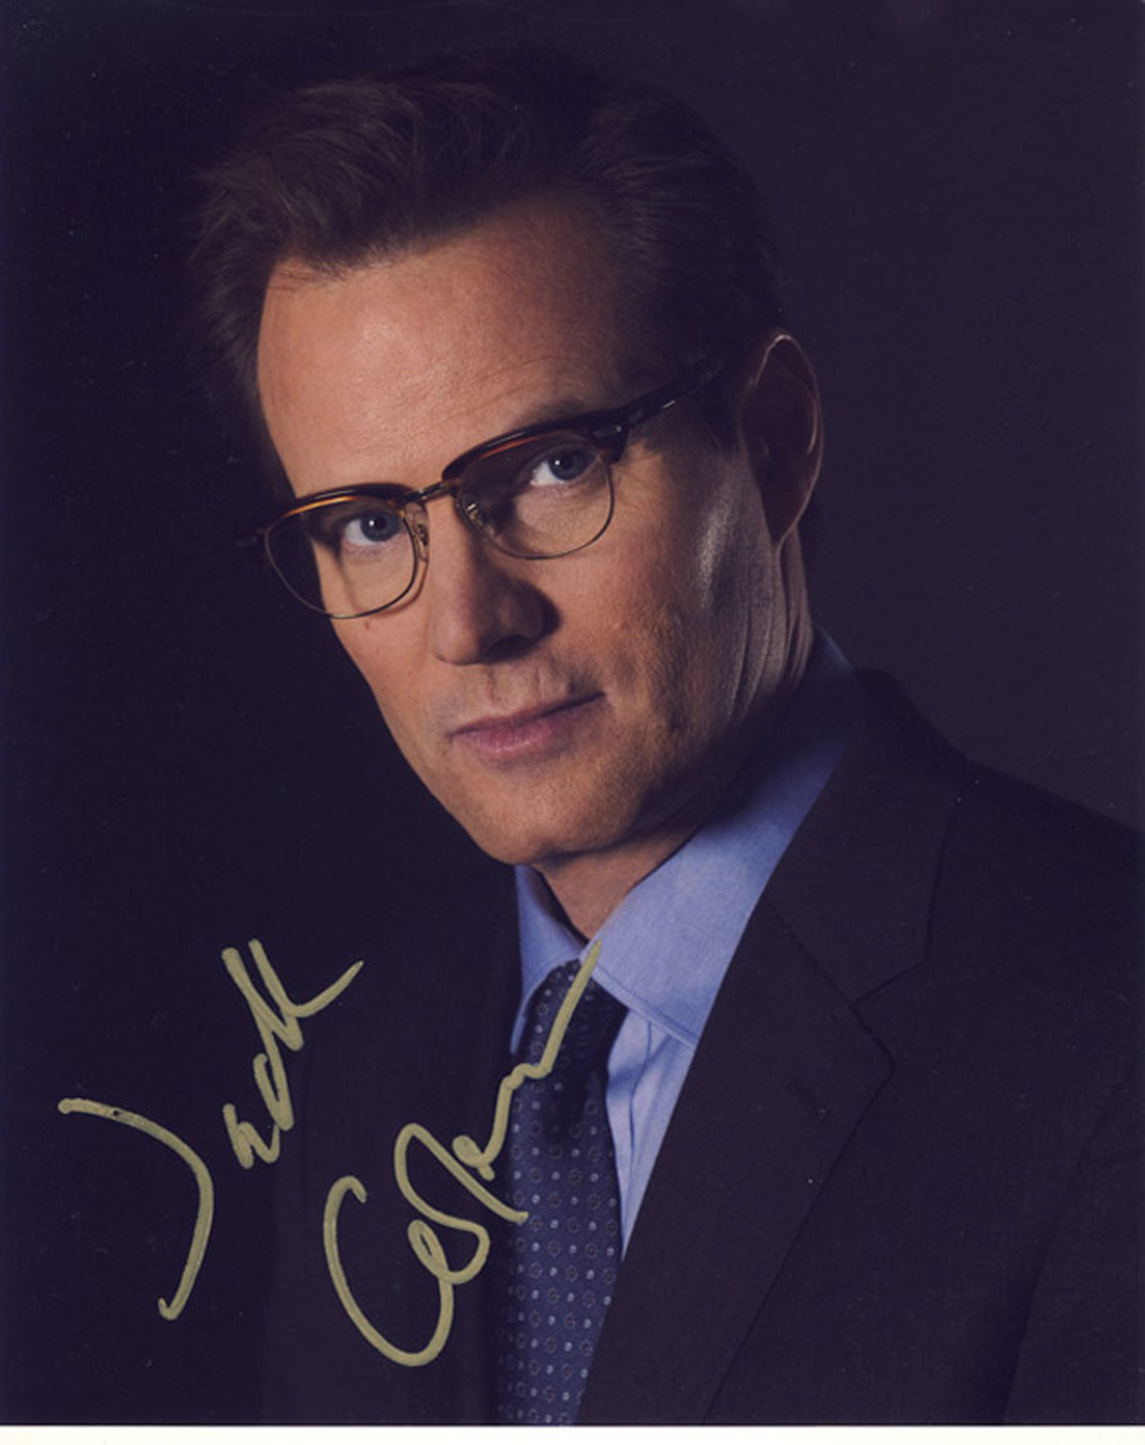 Blowout Sale! Heroes Jack Coleman hand signed 10x8 photo. This beautiful 10x8 hand signed photo